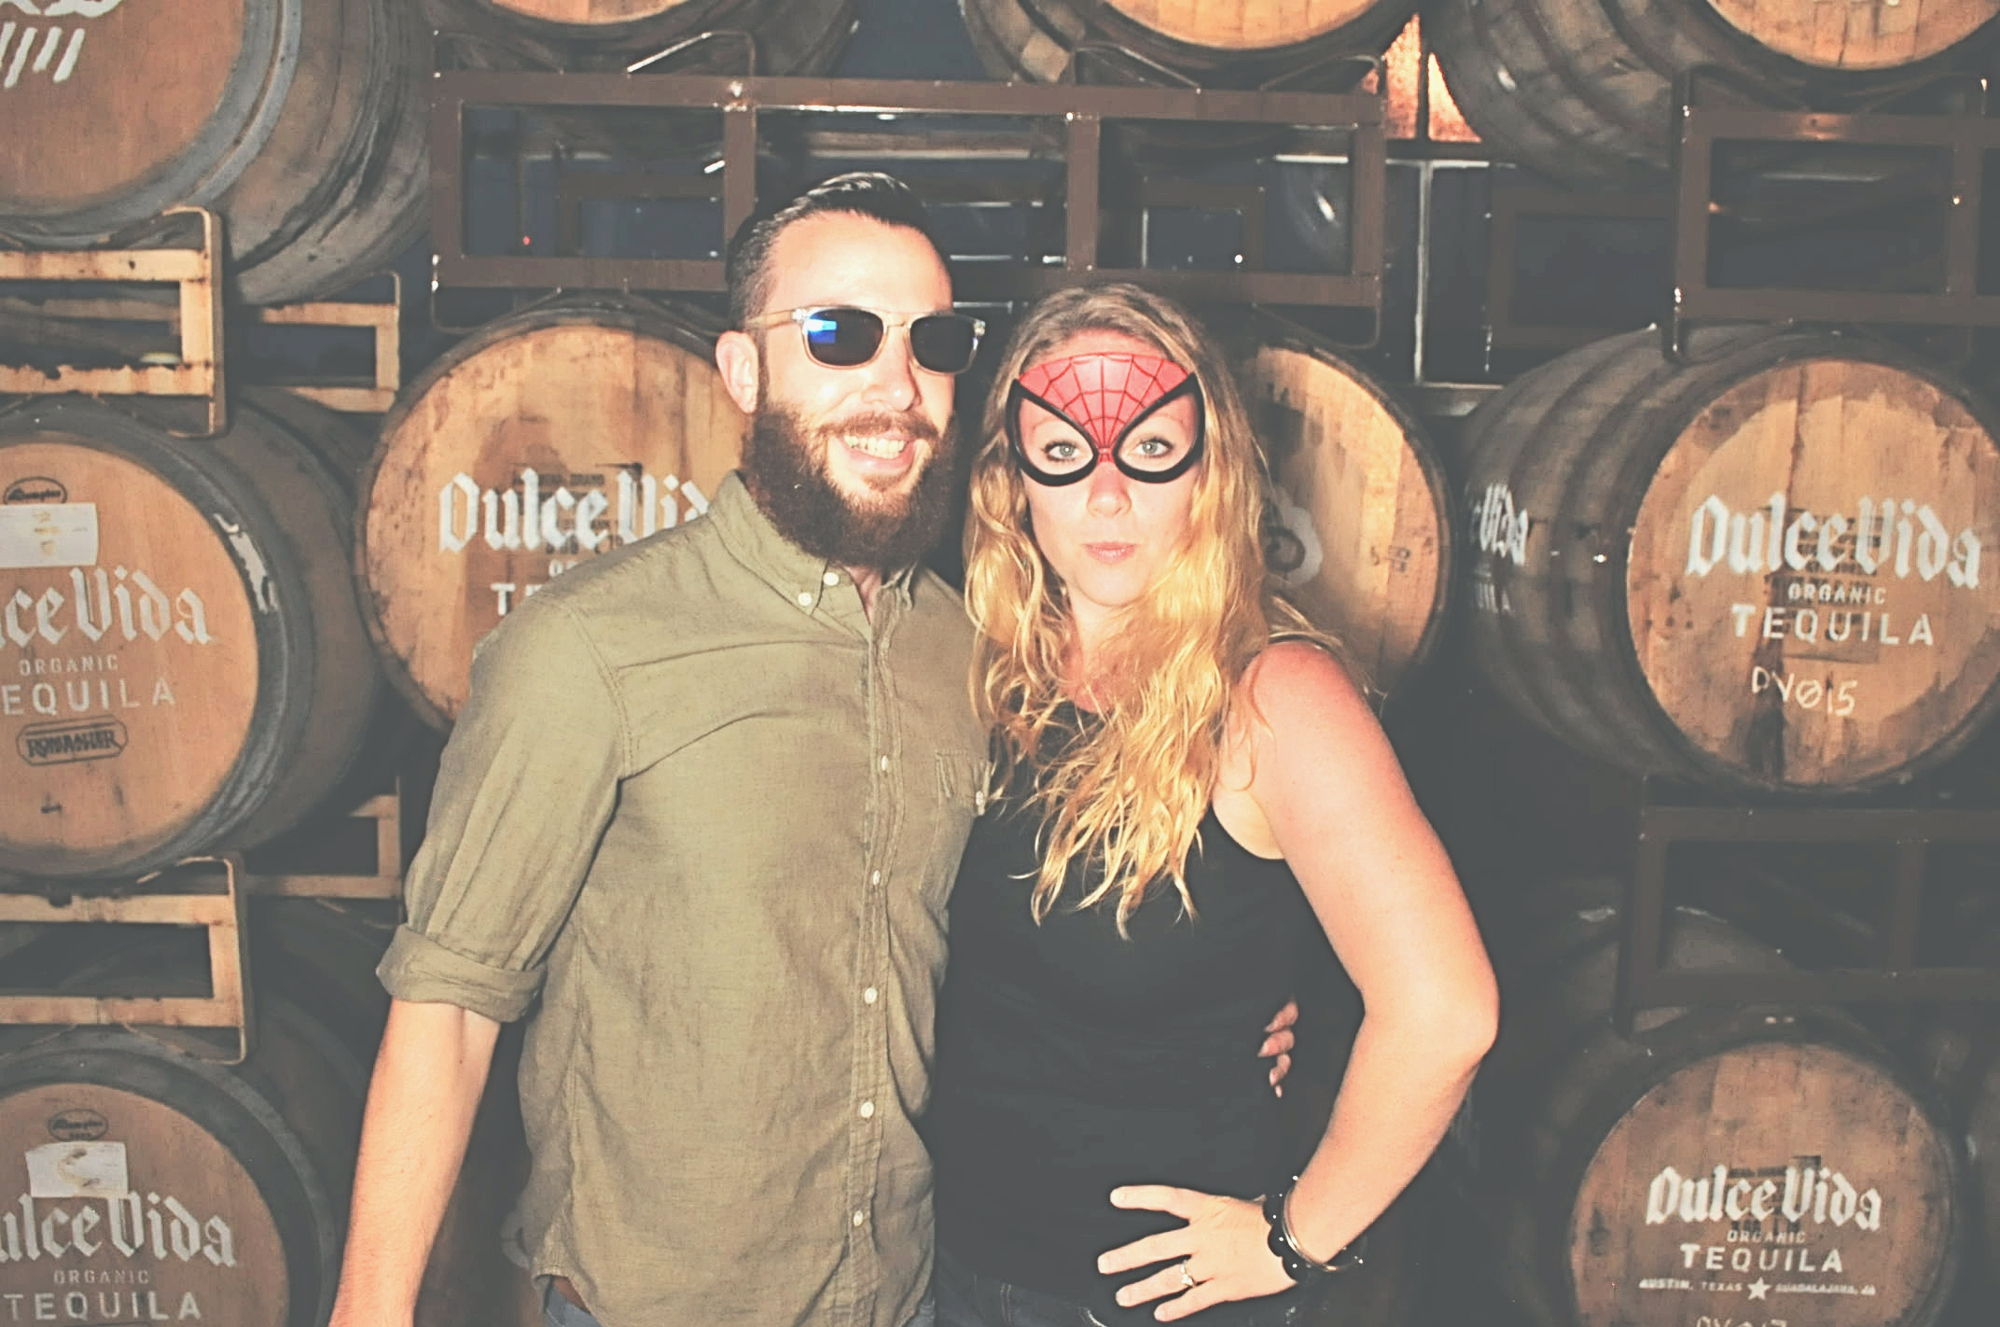 Atlanta Wild Heaven Craft Beers Brewery PhotoBooth - 10-Year Anniversary - RobotBooth 7